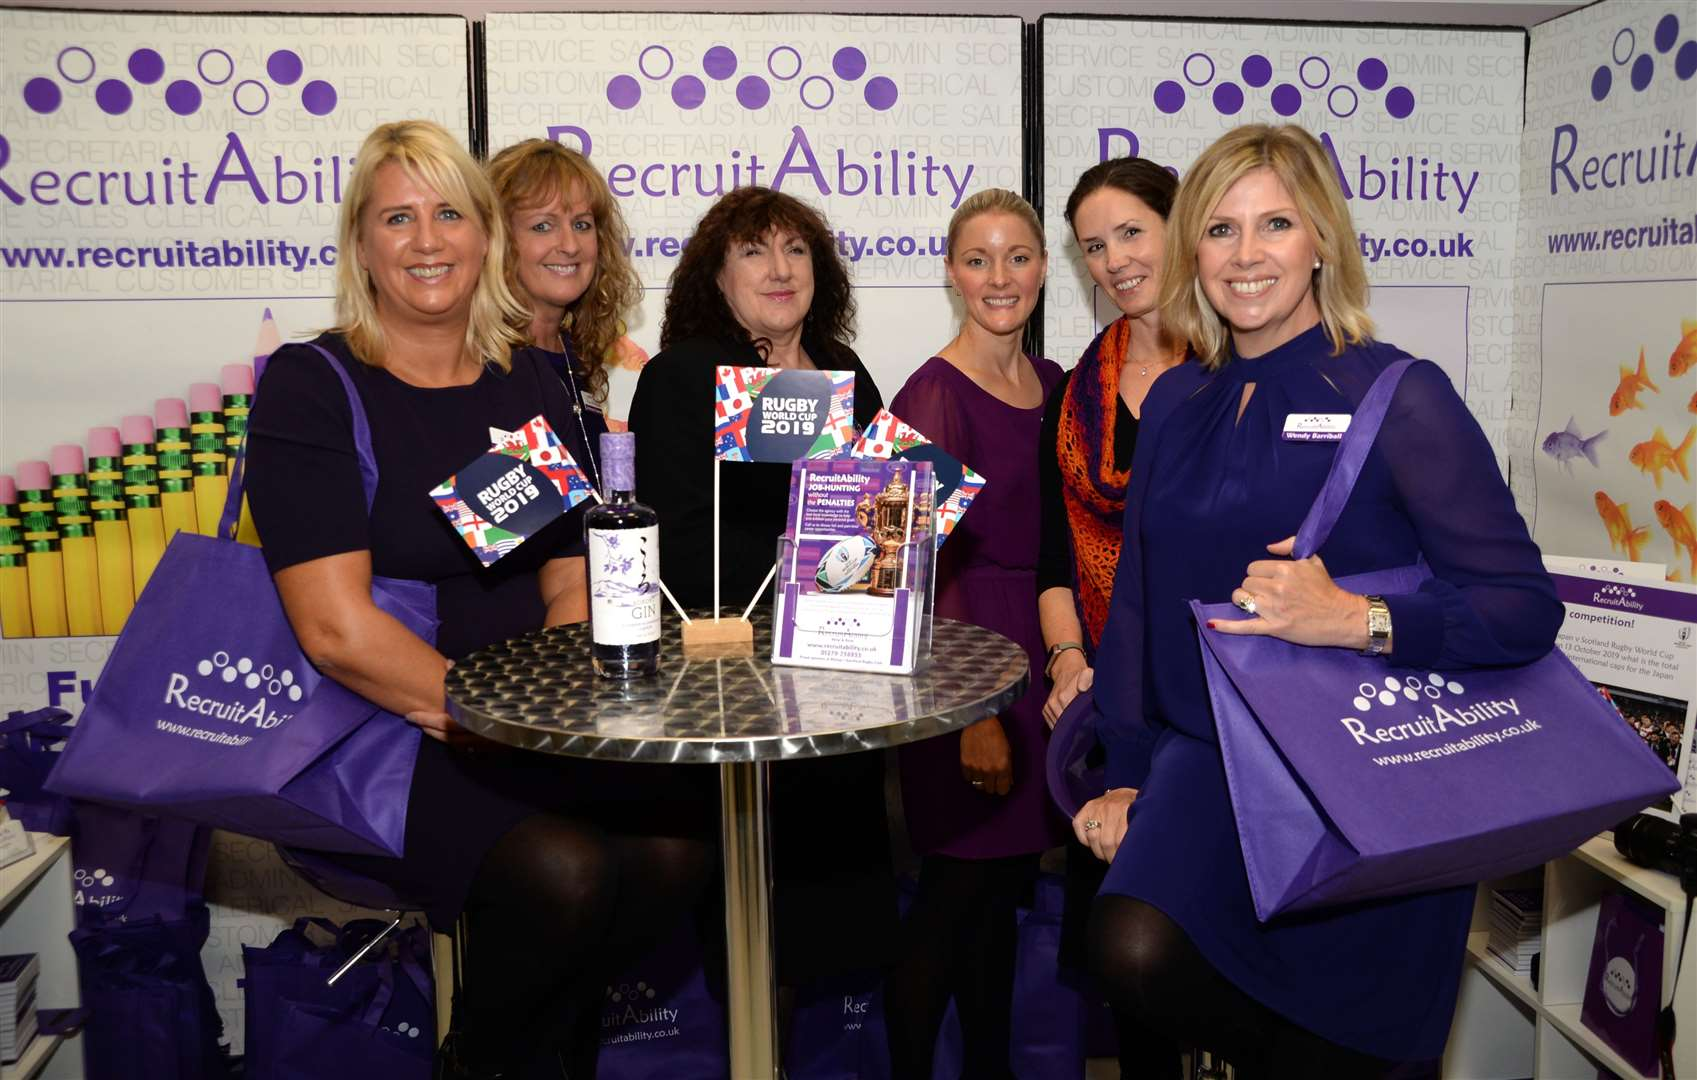 The Recruitability team at last year's BSMB. Picture: Vikki Lince